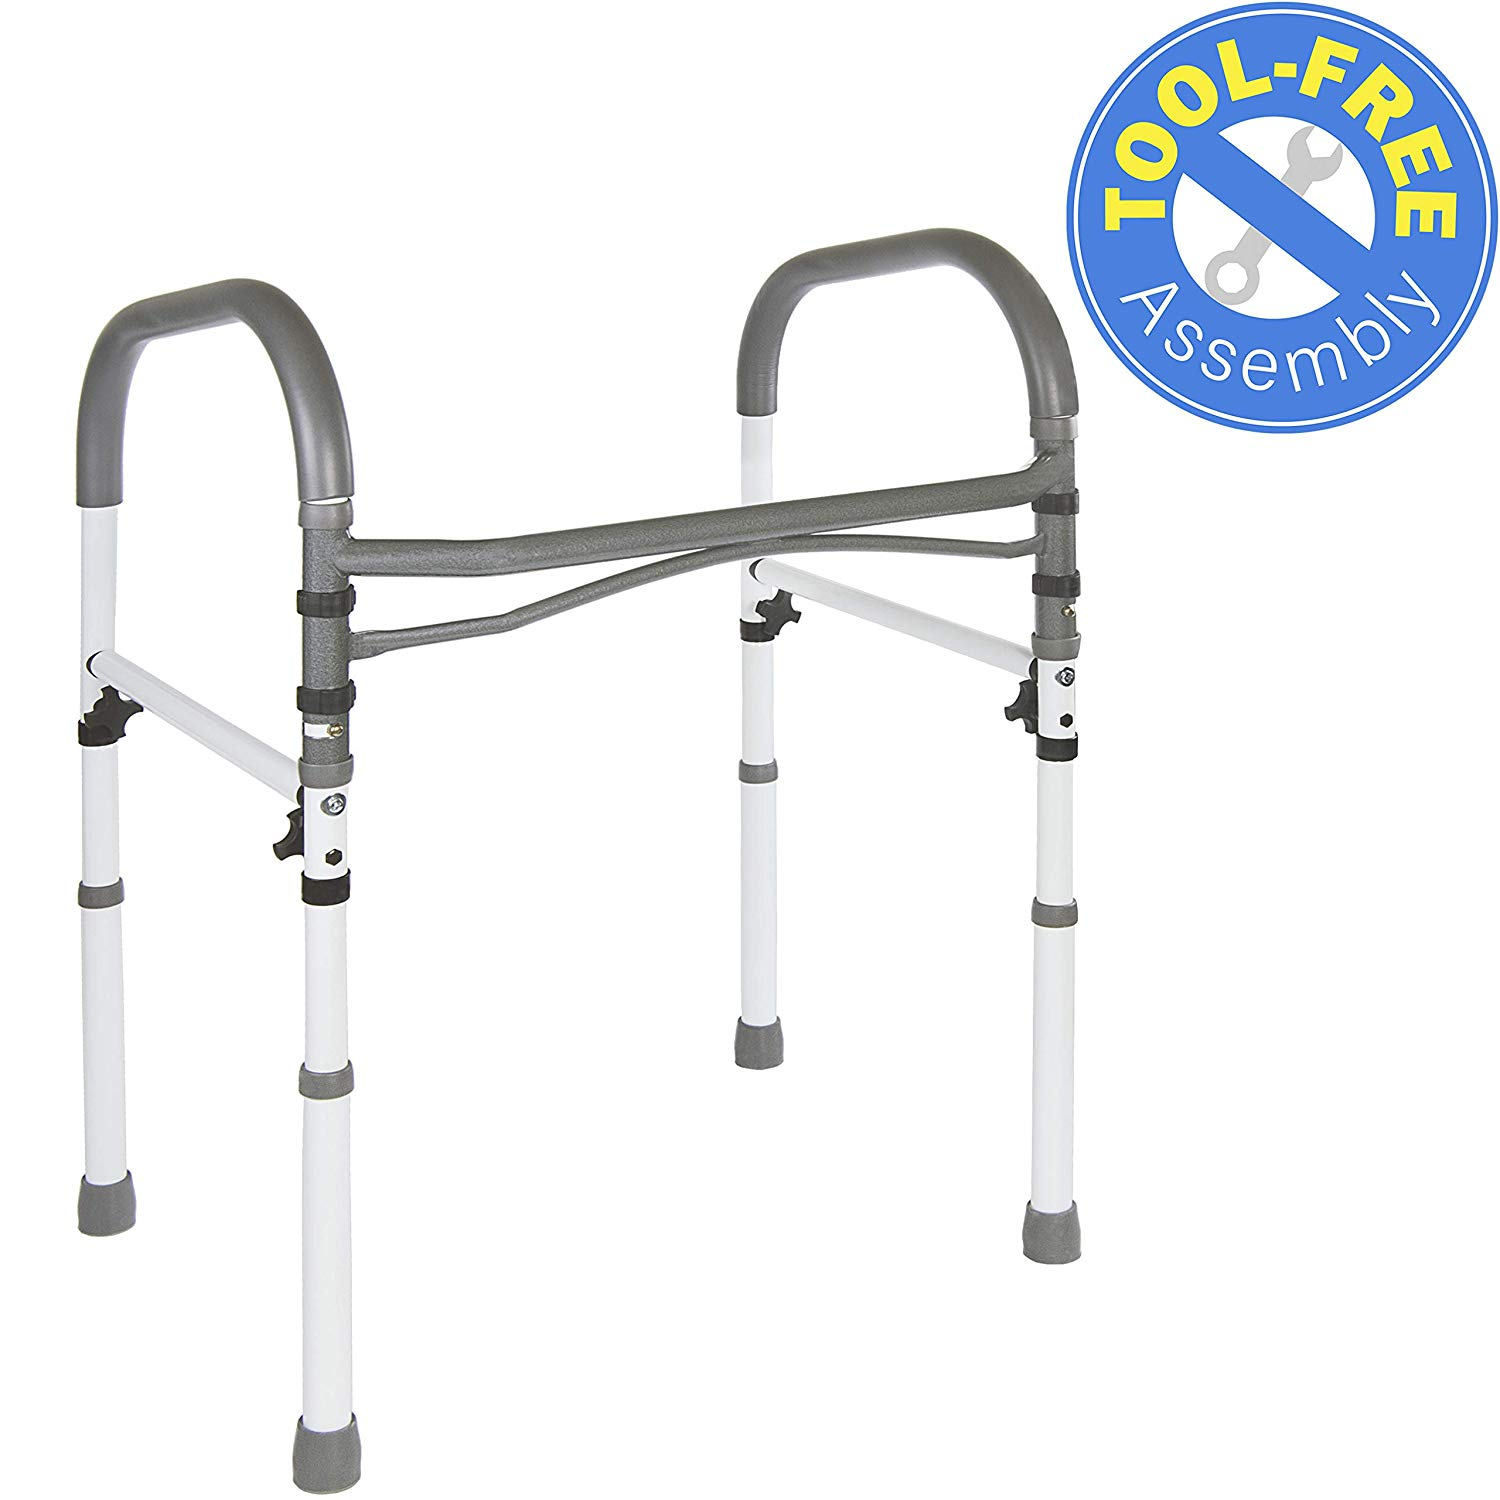 1. Vaunn Deluxe Bathroom Safety Toilet Rail - Adjustable Toilet Safety Frame - Medical Handrail Assist Grab bar Handle